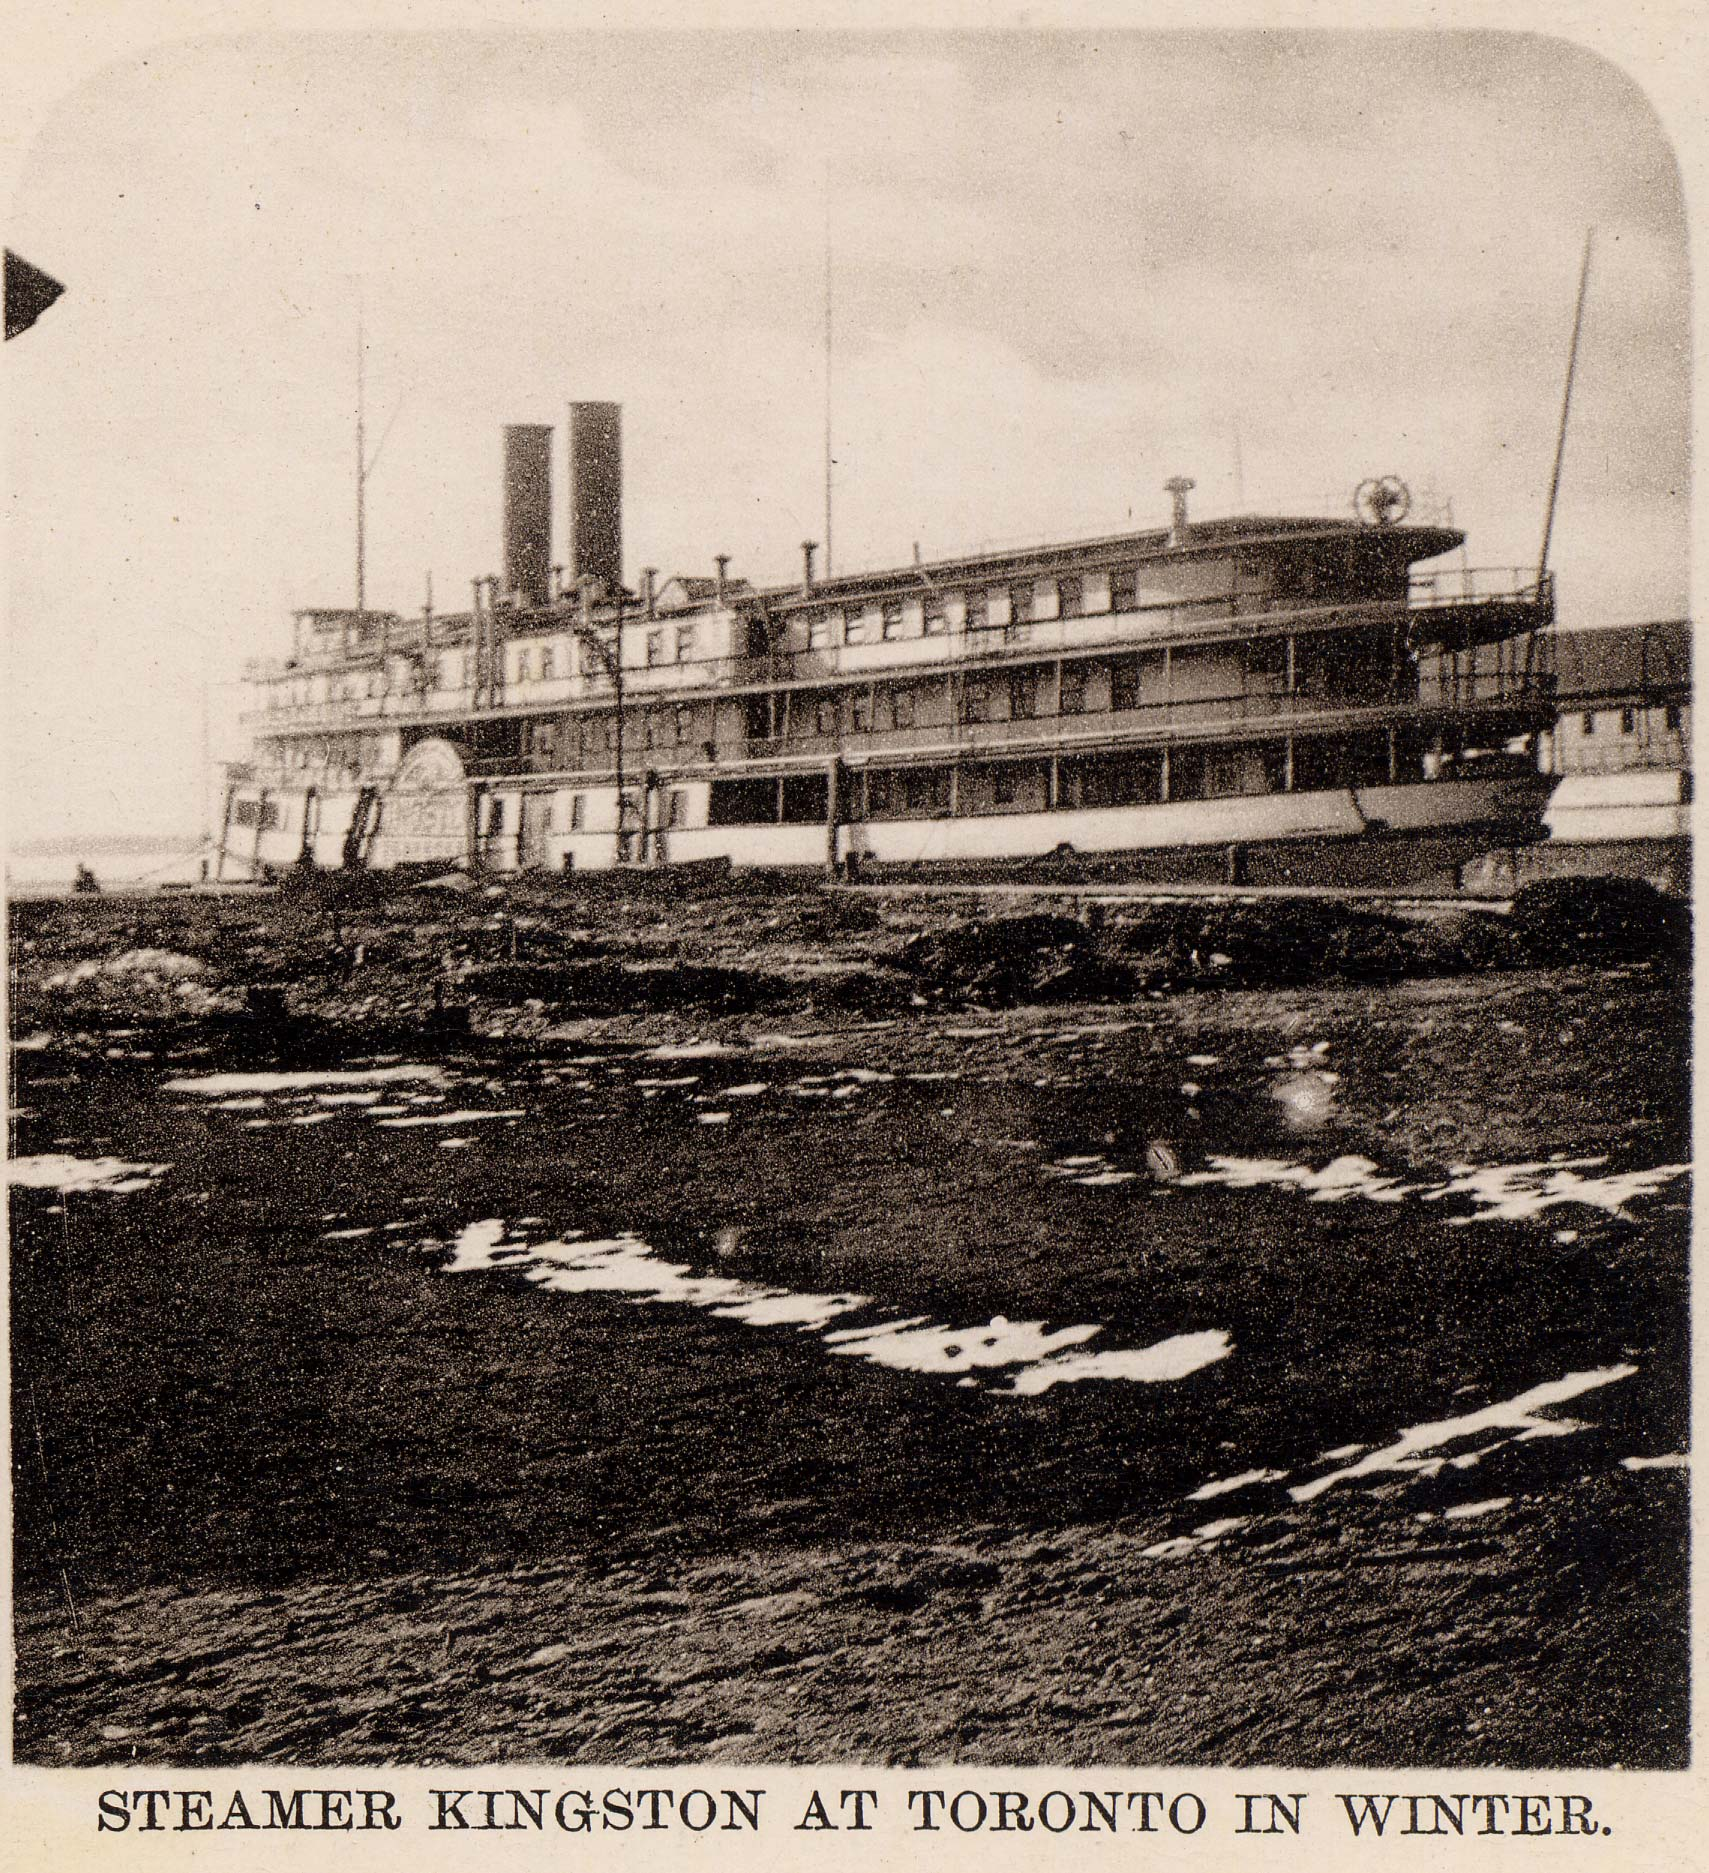 Steamer KINGSTON at Toronto in winter